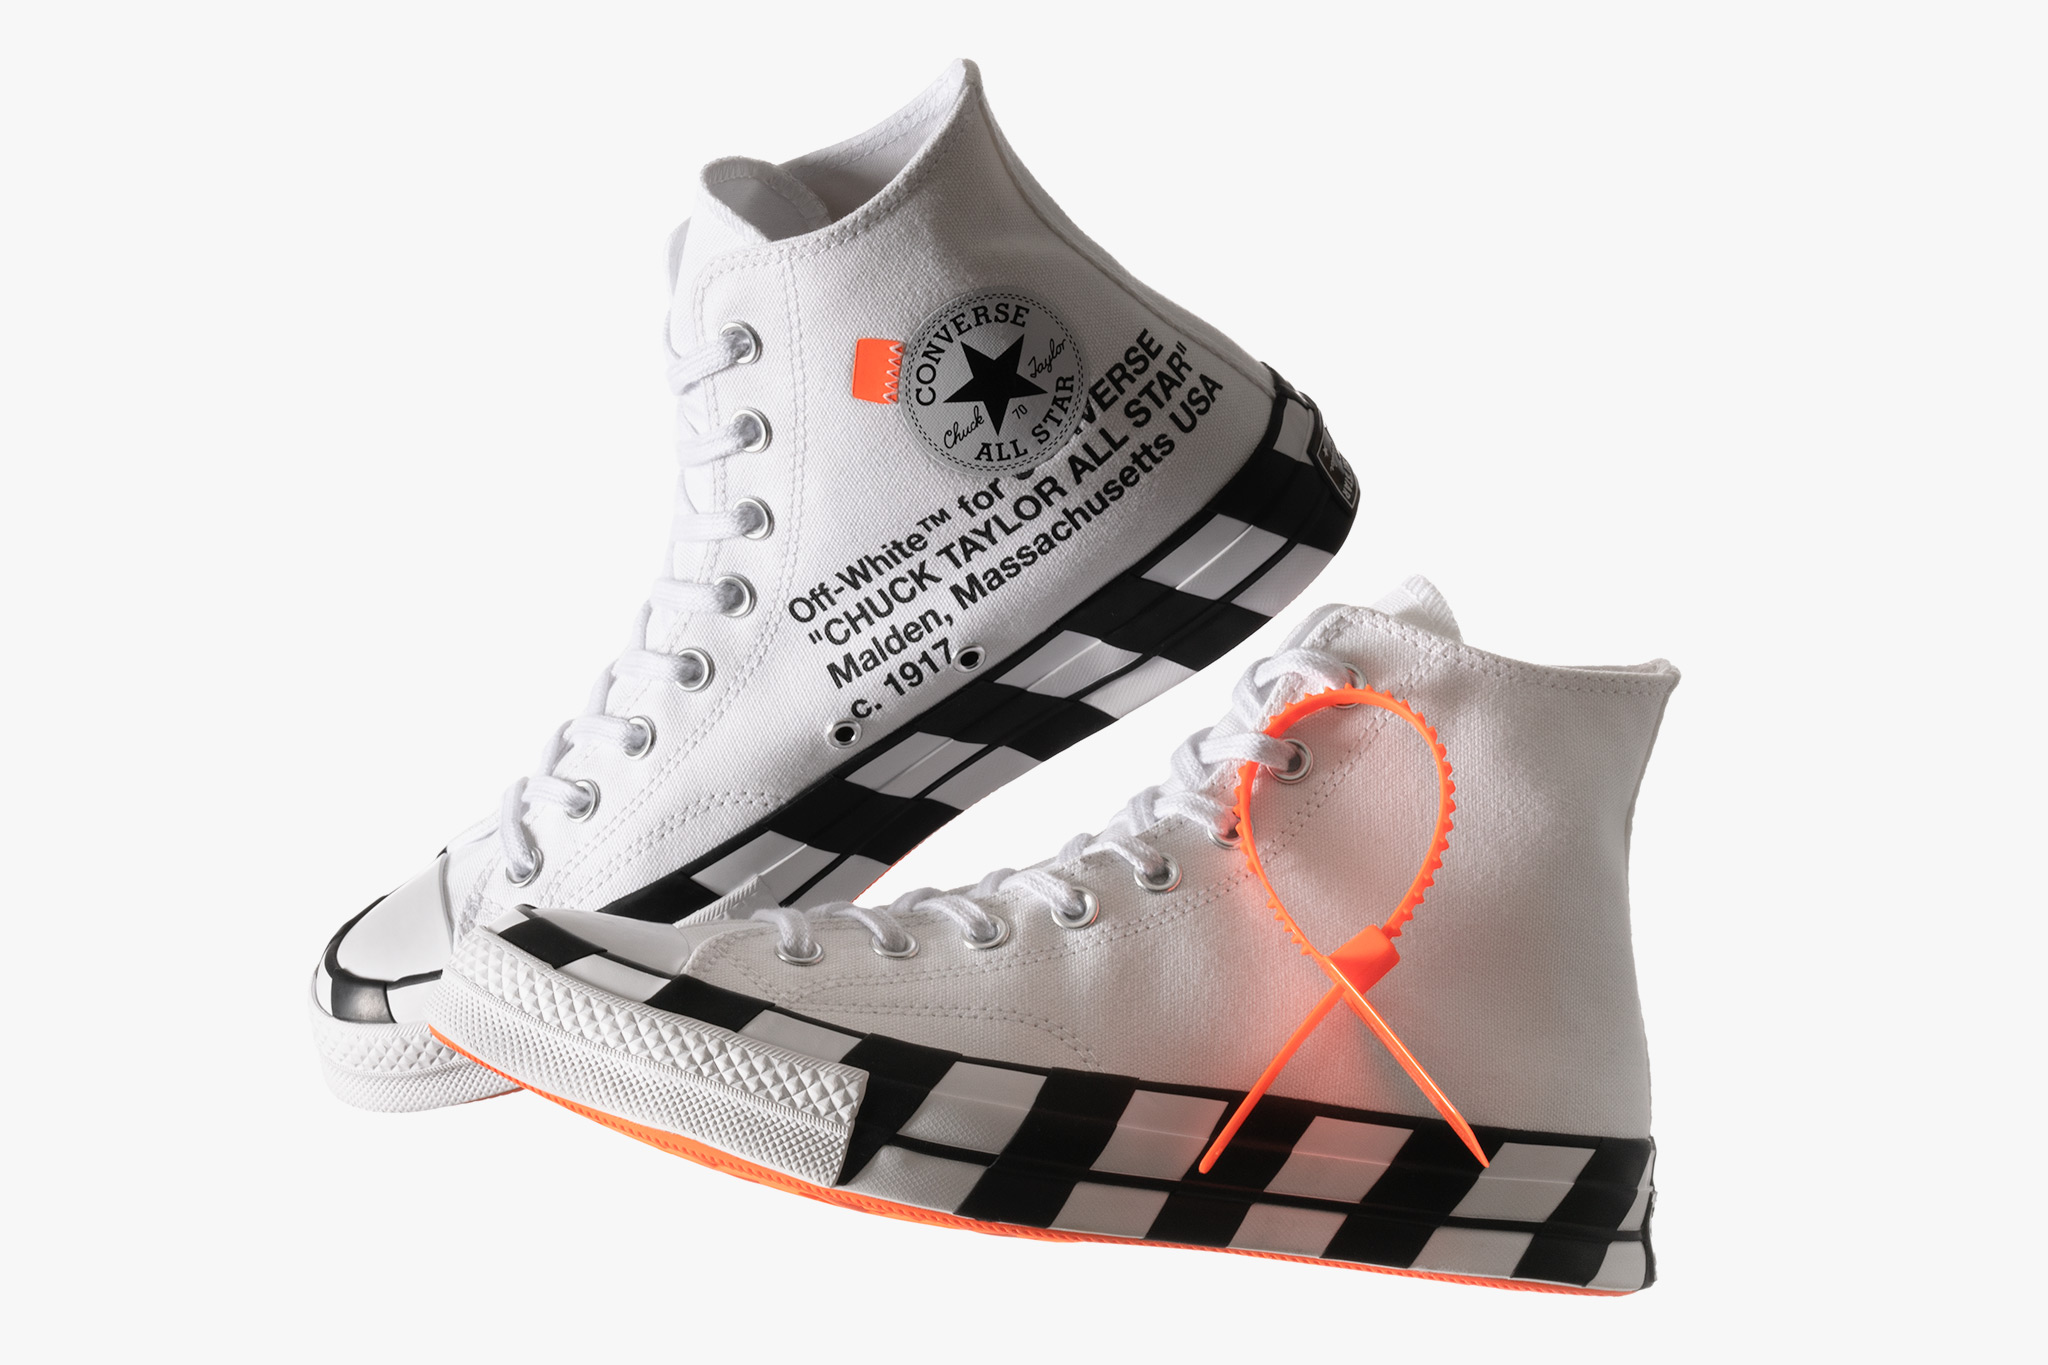 9ae43fb9b9 NEW OFF-WHITE x Converse Chuck 70 - Where to Buy